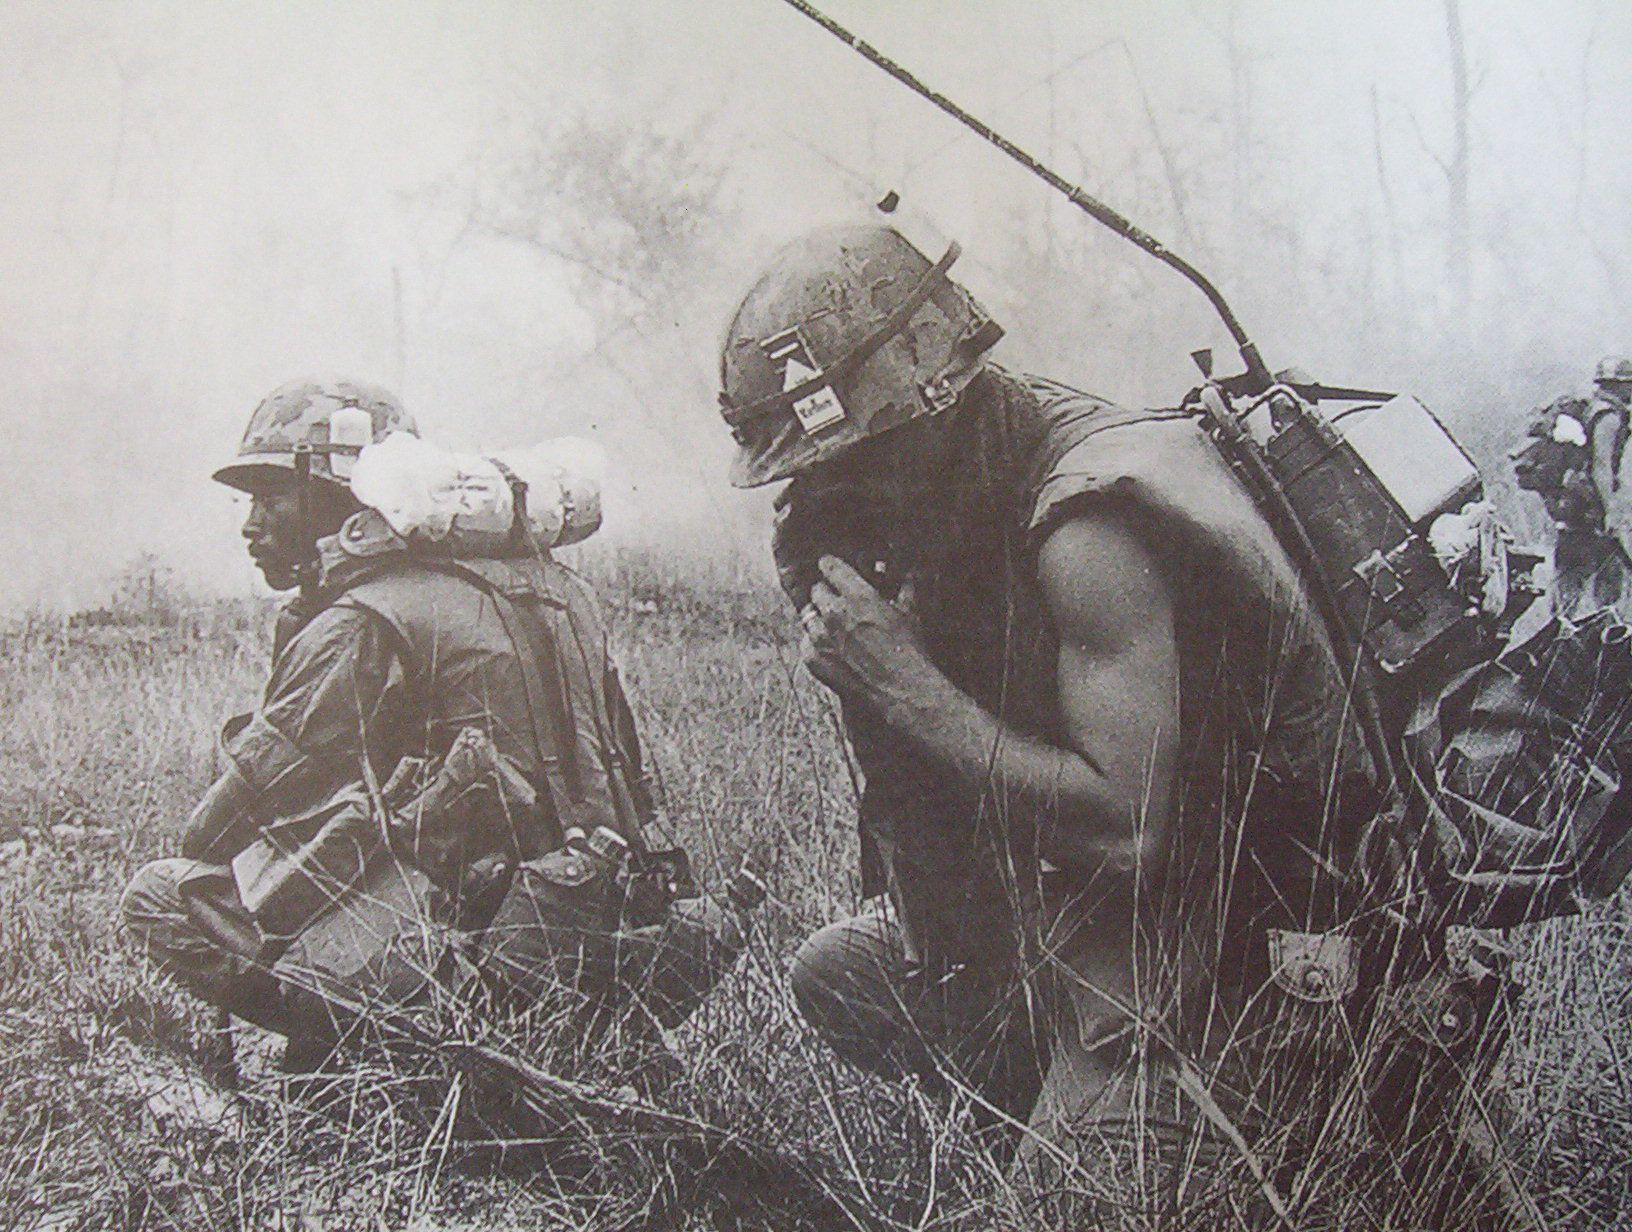 unit st flc fsr ration co baker camp books flc red all elements of the lib played an intricate and heavy role in the 1968 tet offensive around the saigon long binh bien hoa area vietnam war